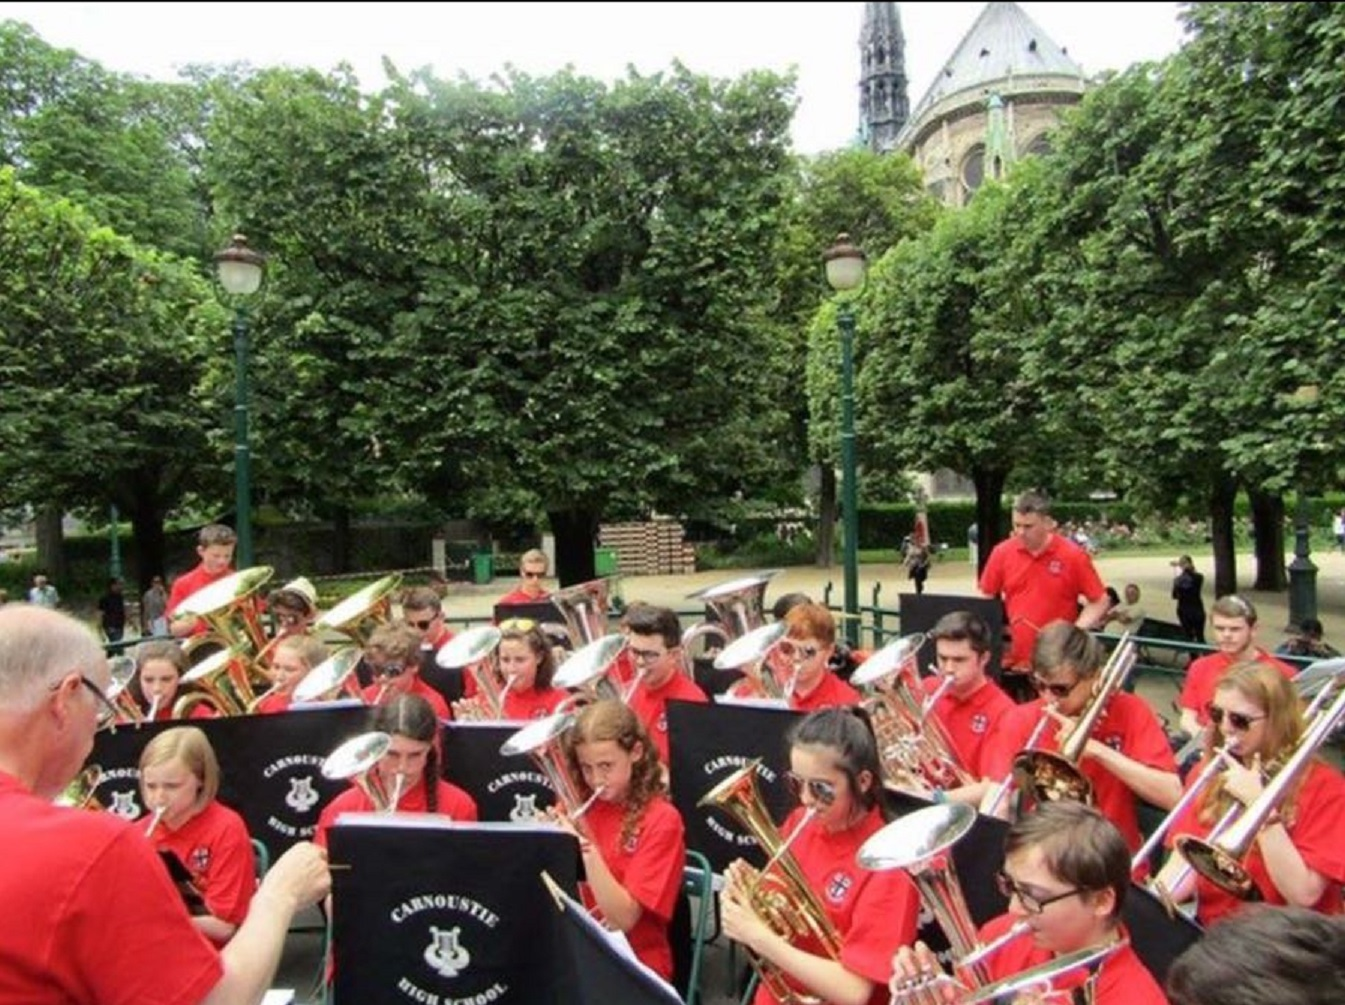 The Carnoustie band performing in front of the Notre Dame Cathedral in Paris